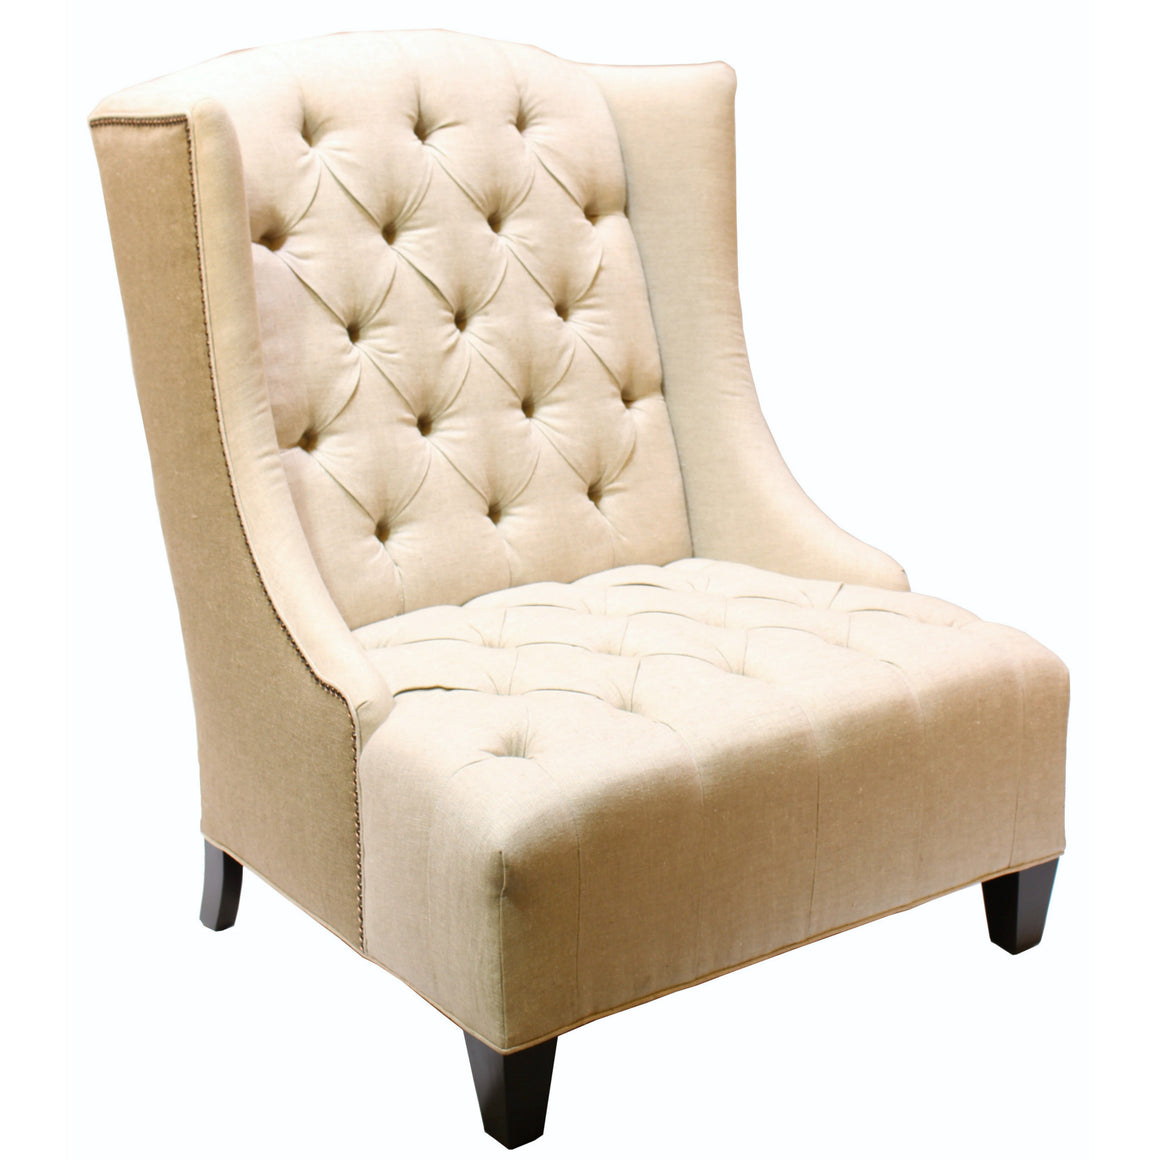 Rodin Oversized Wing Chair, Linen & Burlap